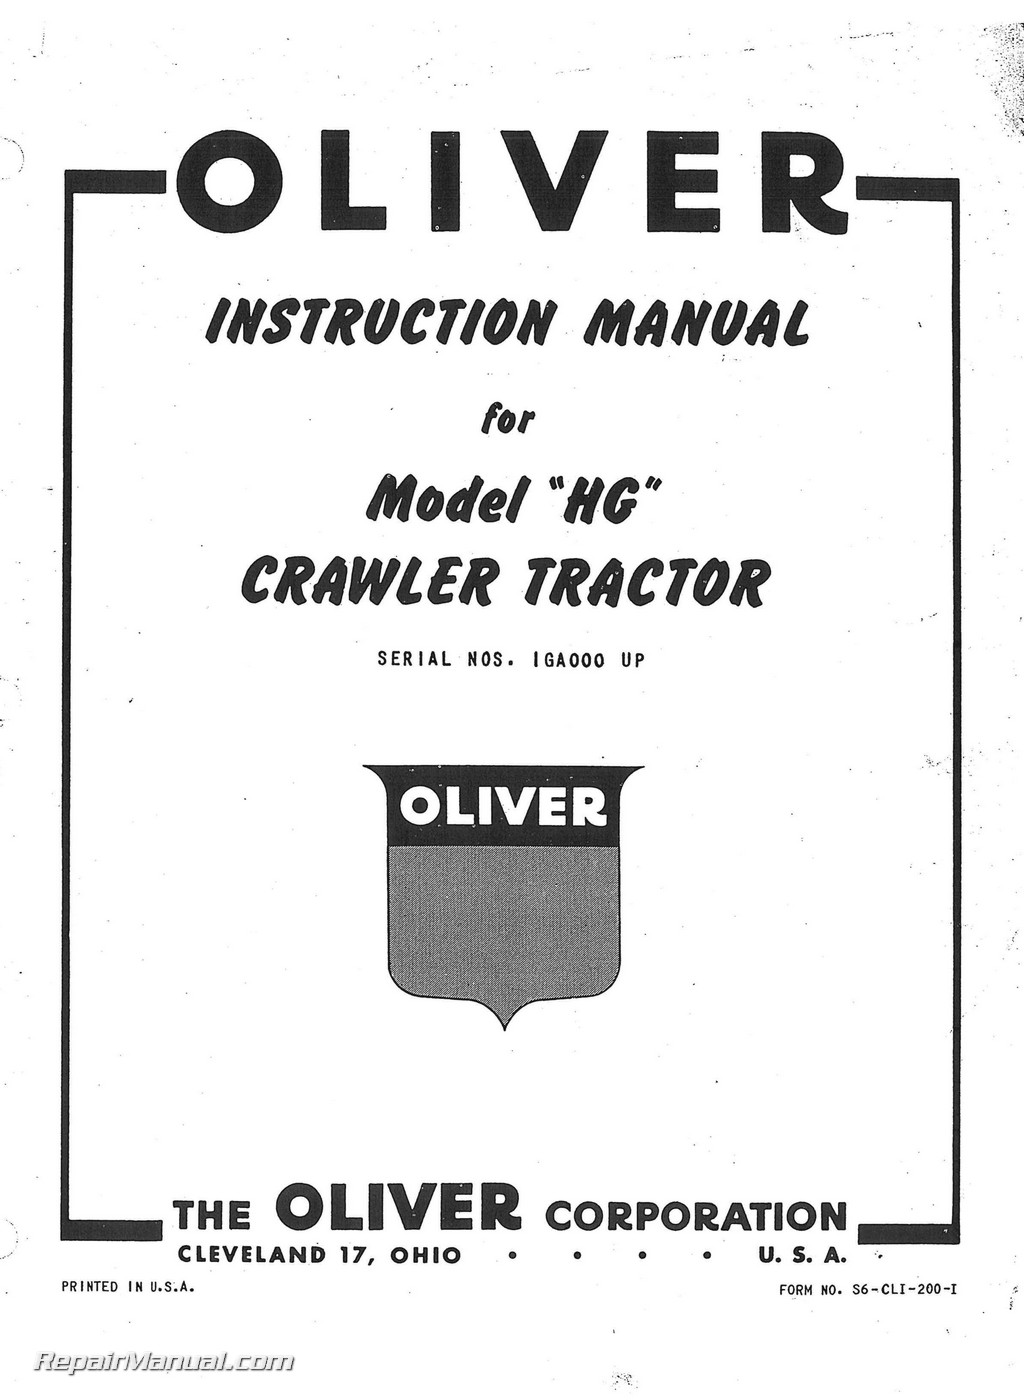 Oliver Cletrac HG Tractor Instruction Manual on